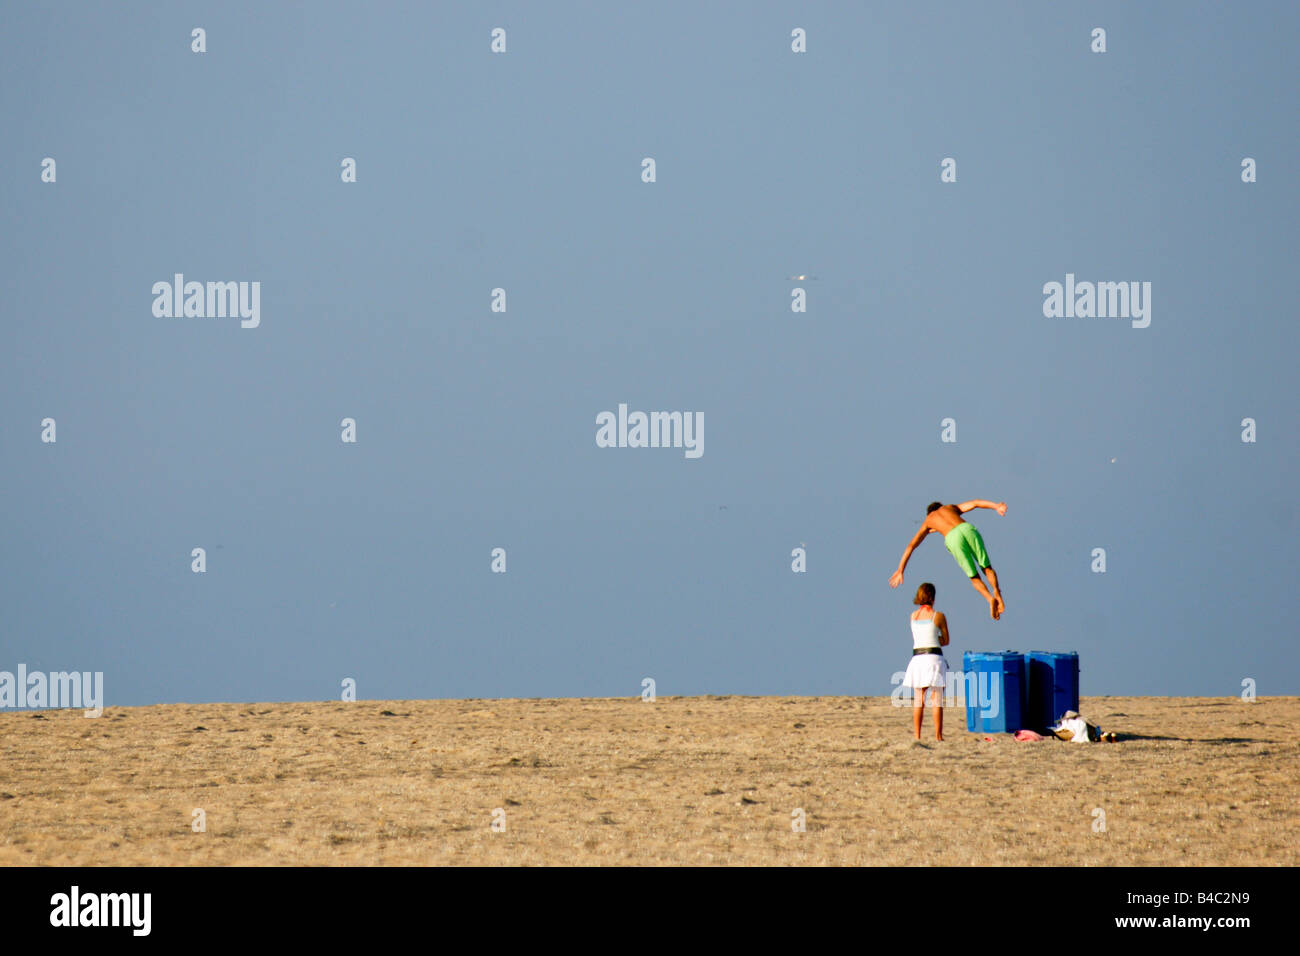 Man trying impress woman bare chest at sand beach under blue sky Hoek van Holland Netherlands alone empty abandoned - Stock Image